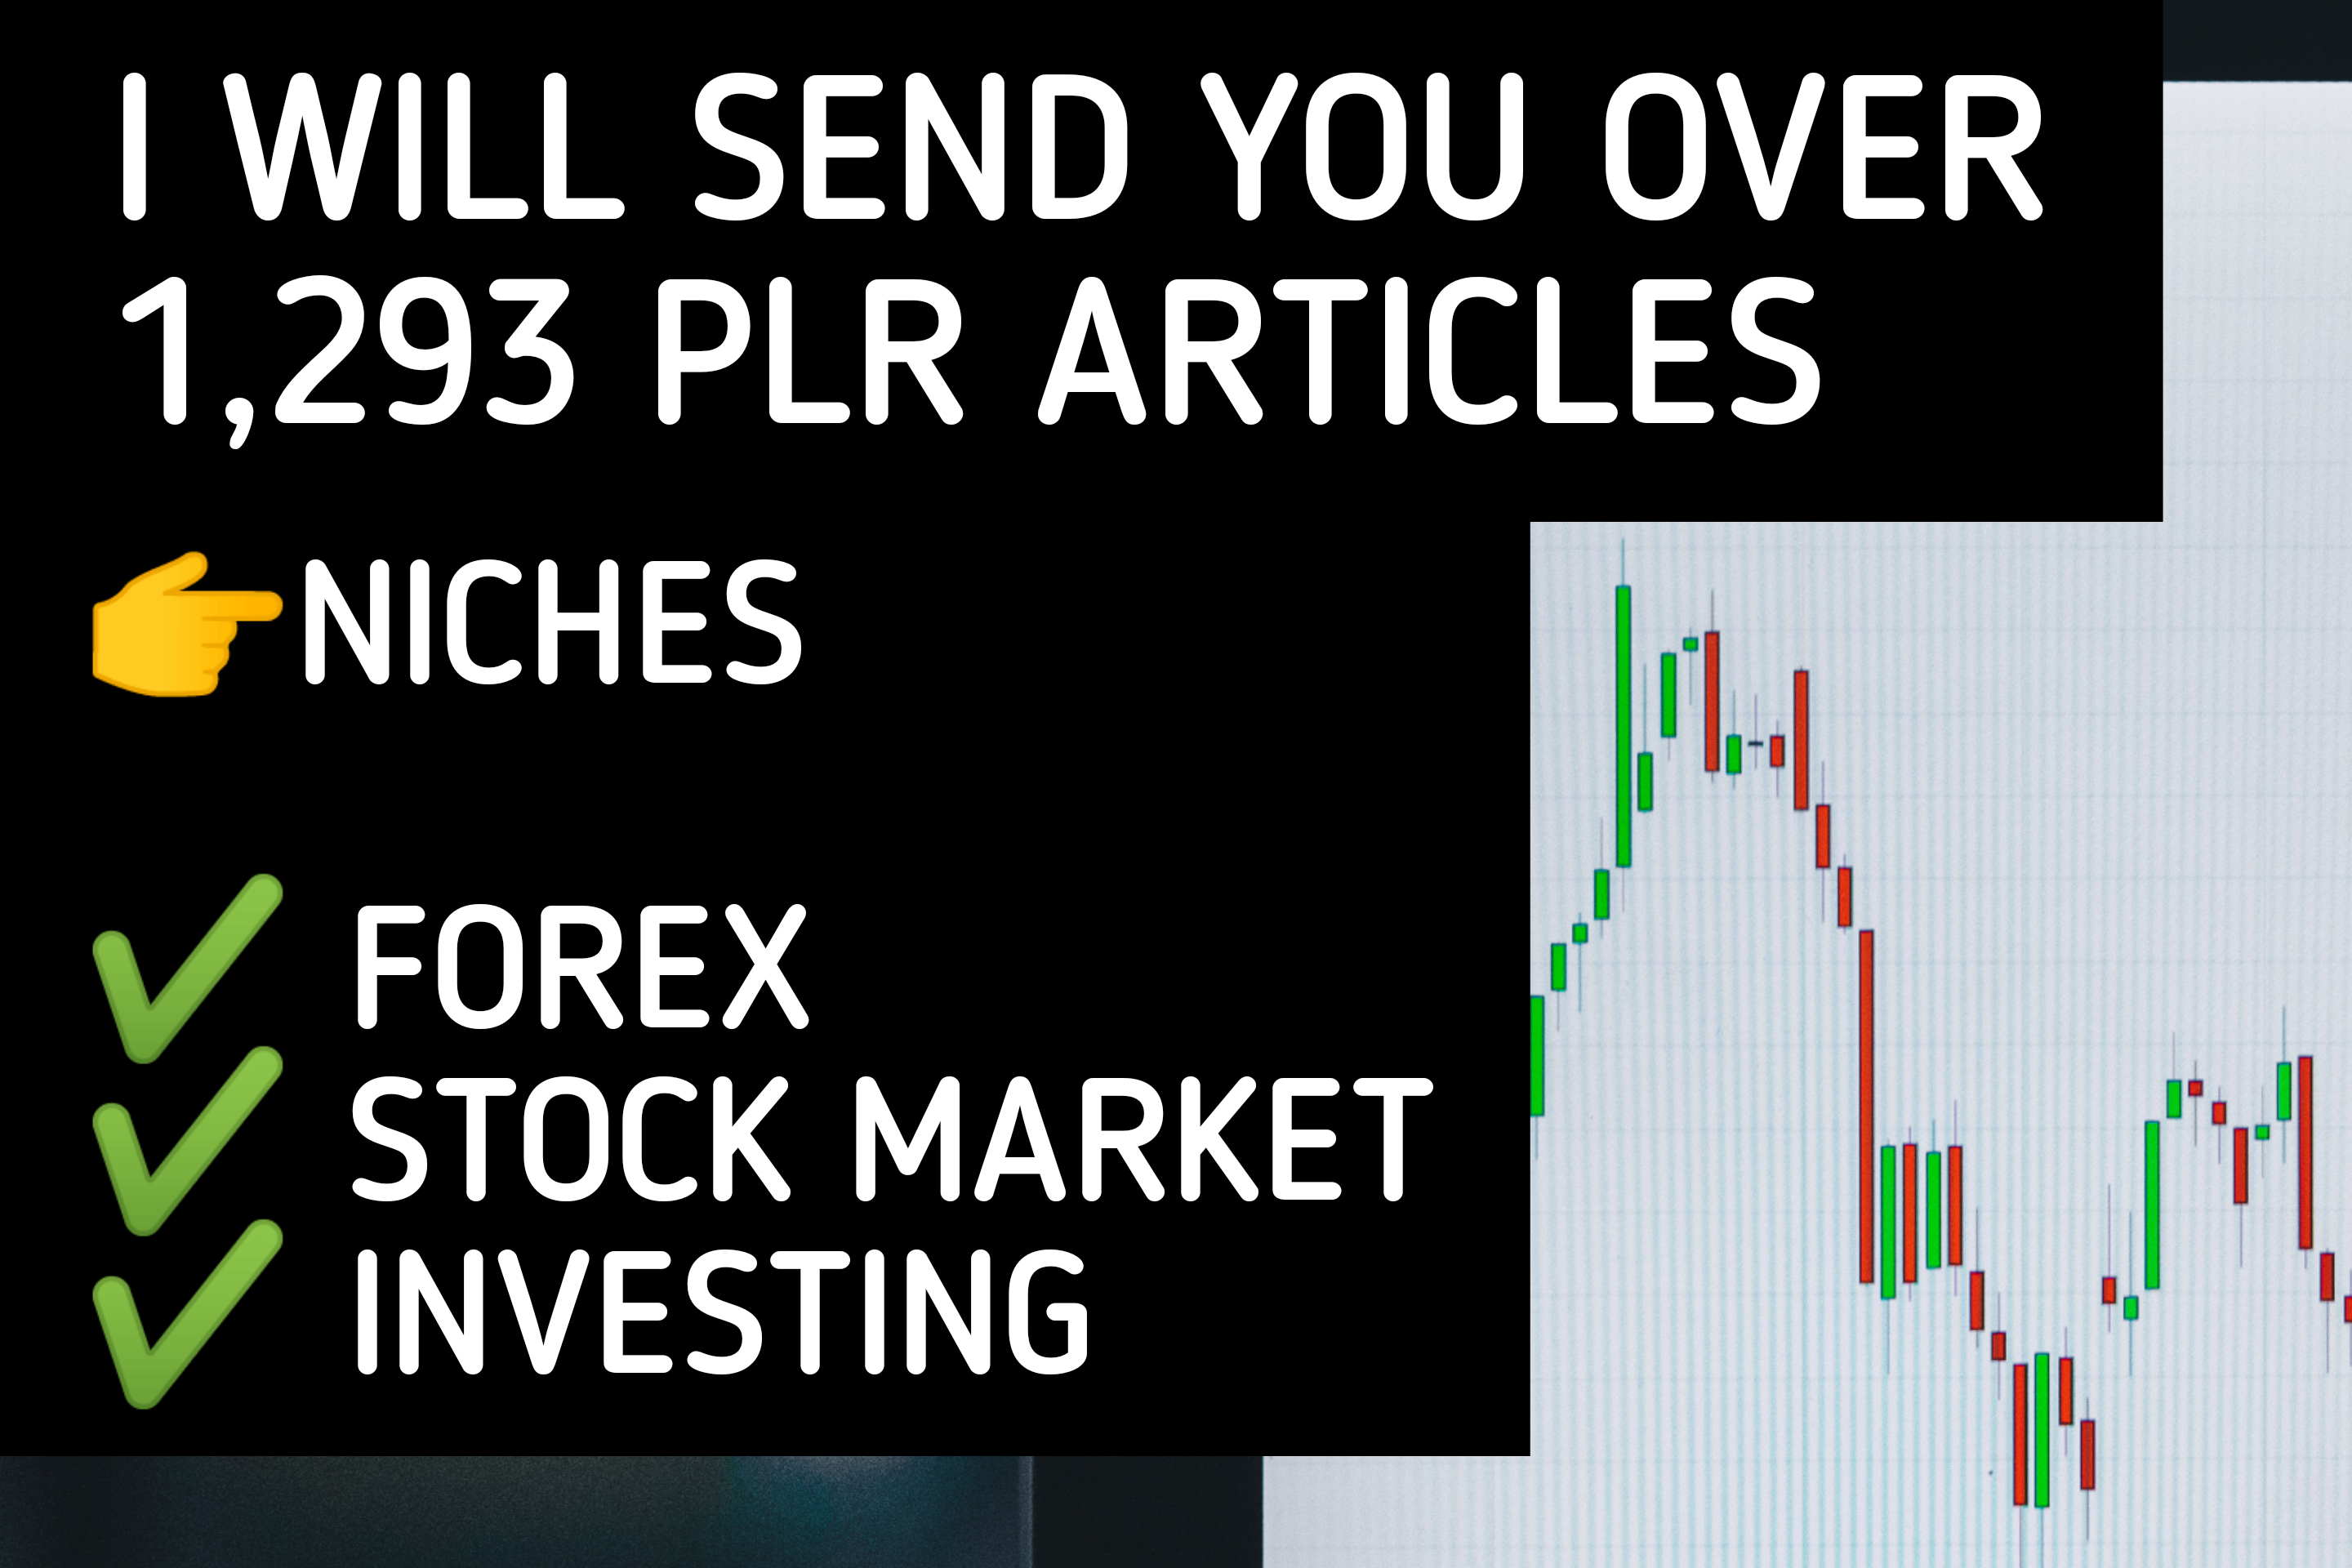 I will send you over 1293 plr articles on stock market, investing, forex